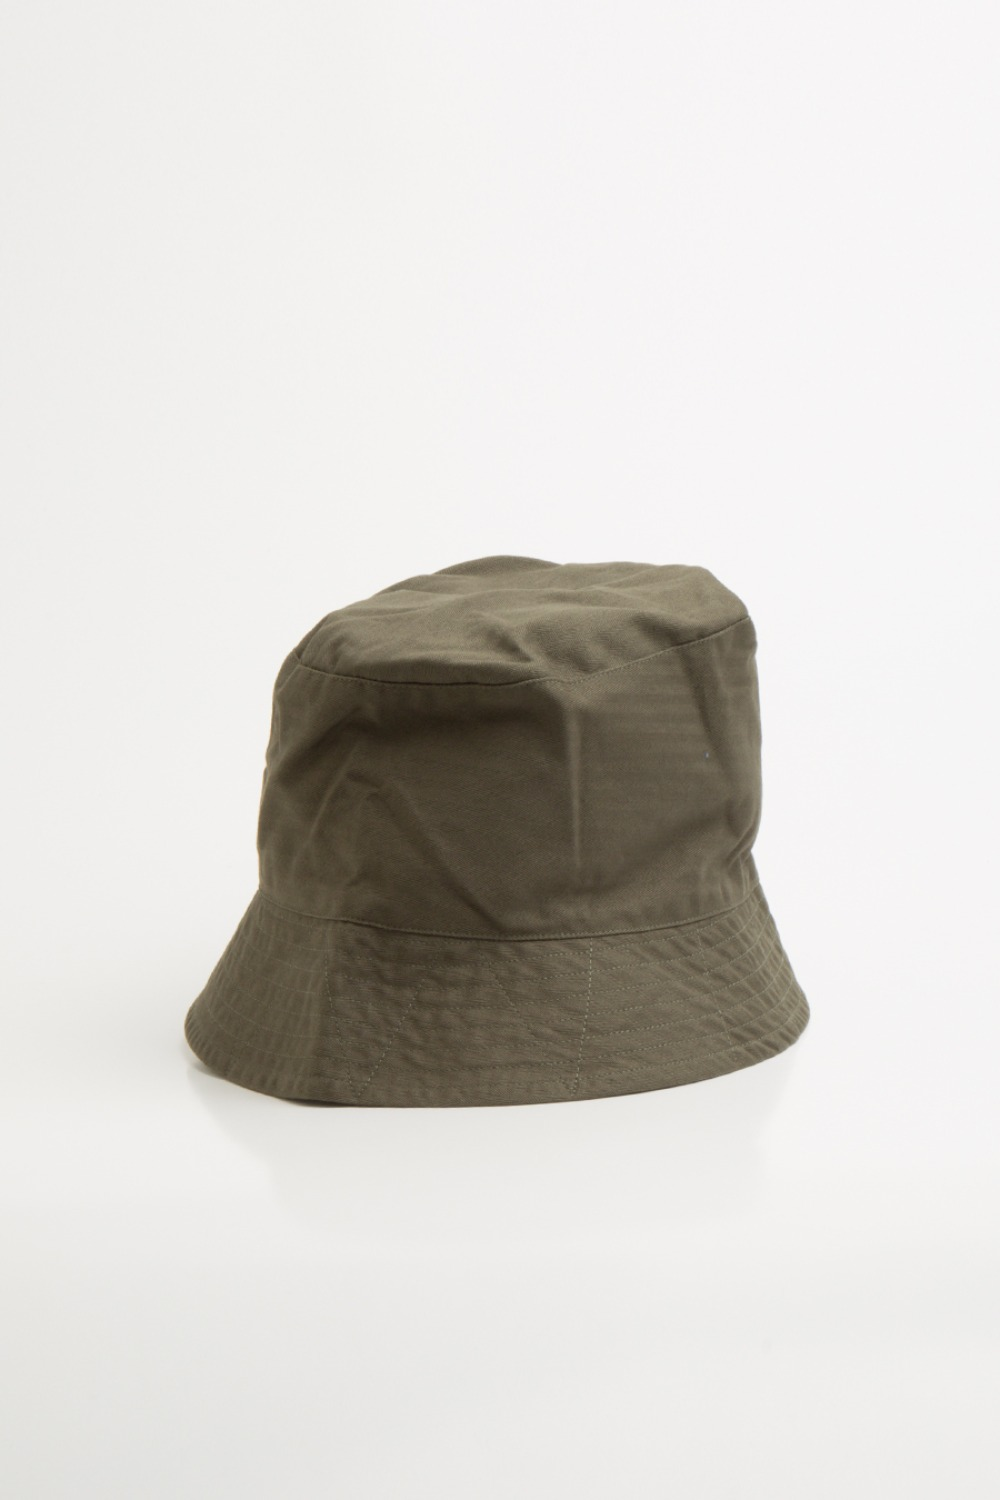 BUCKET HAT OLIVE COTTON HERRINBONE